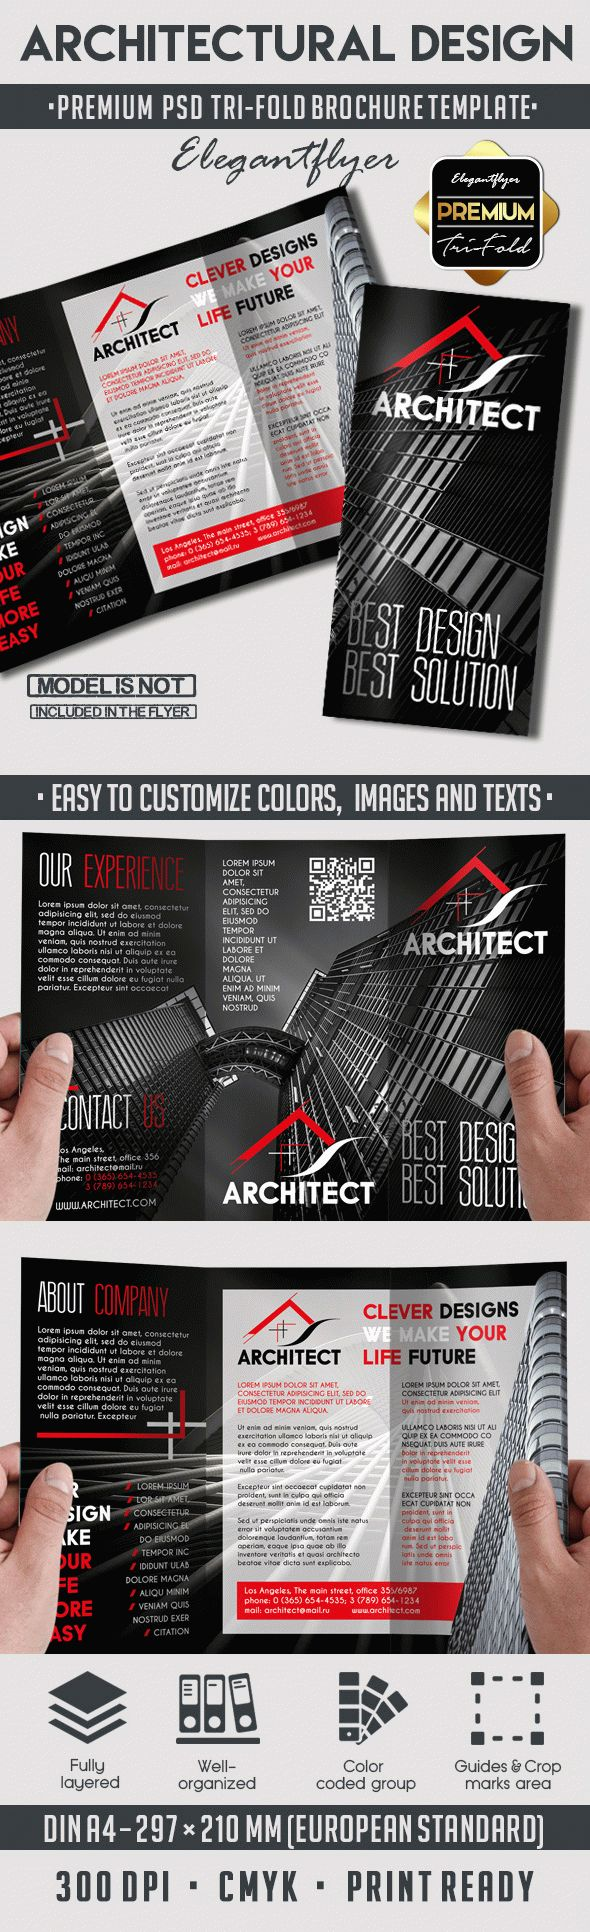 Architectural Design PSD Template